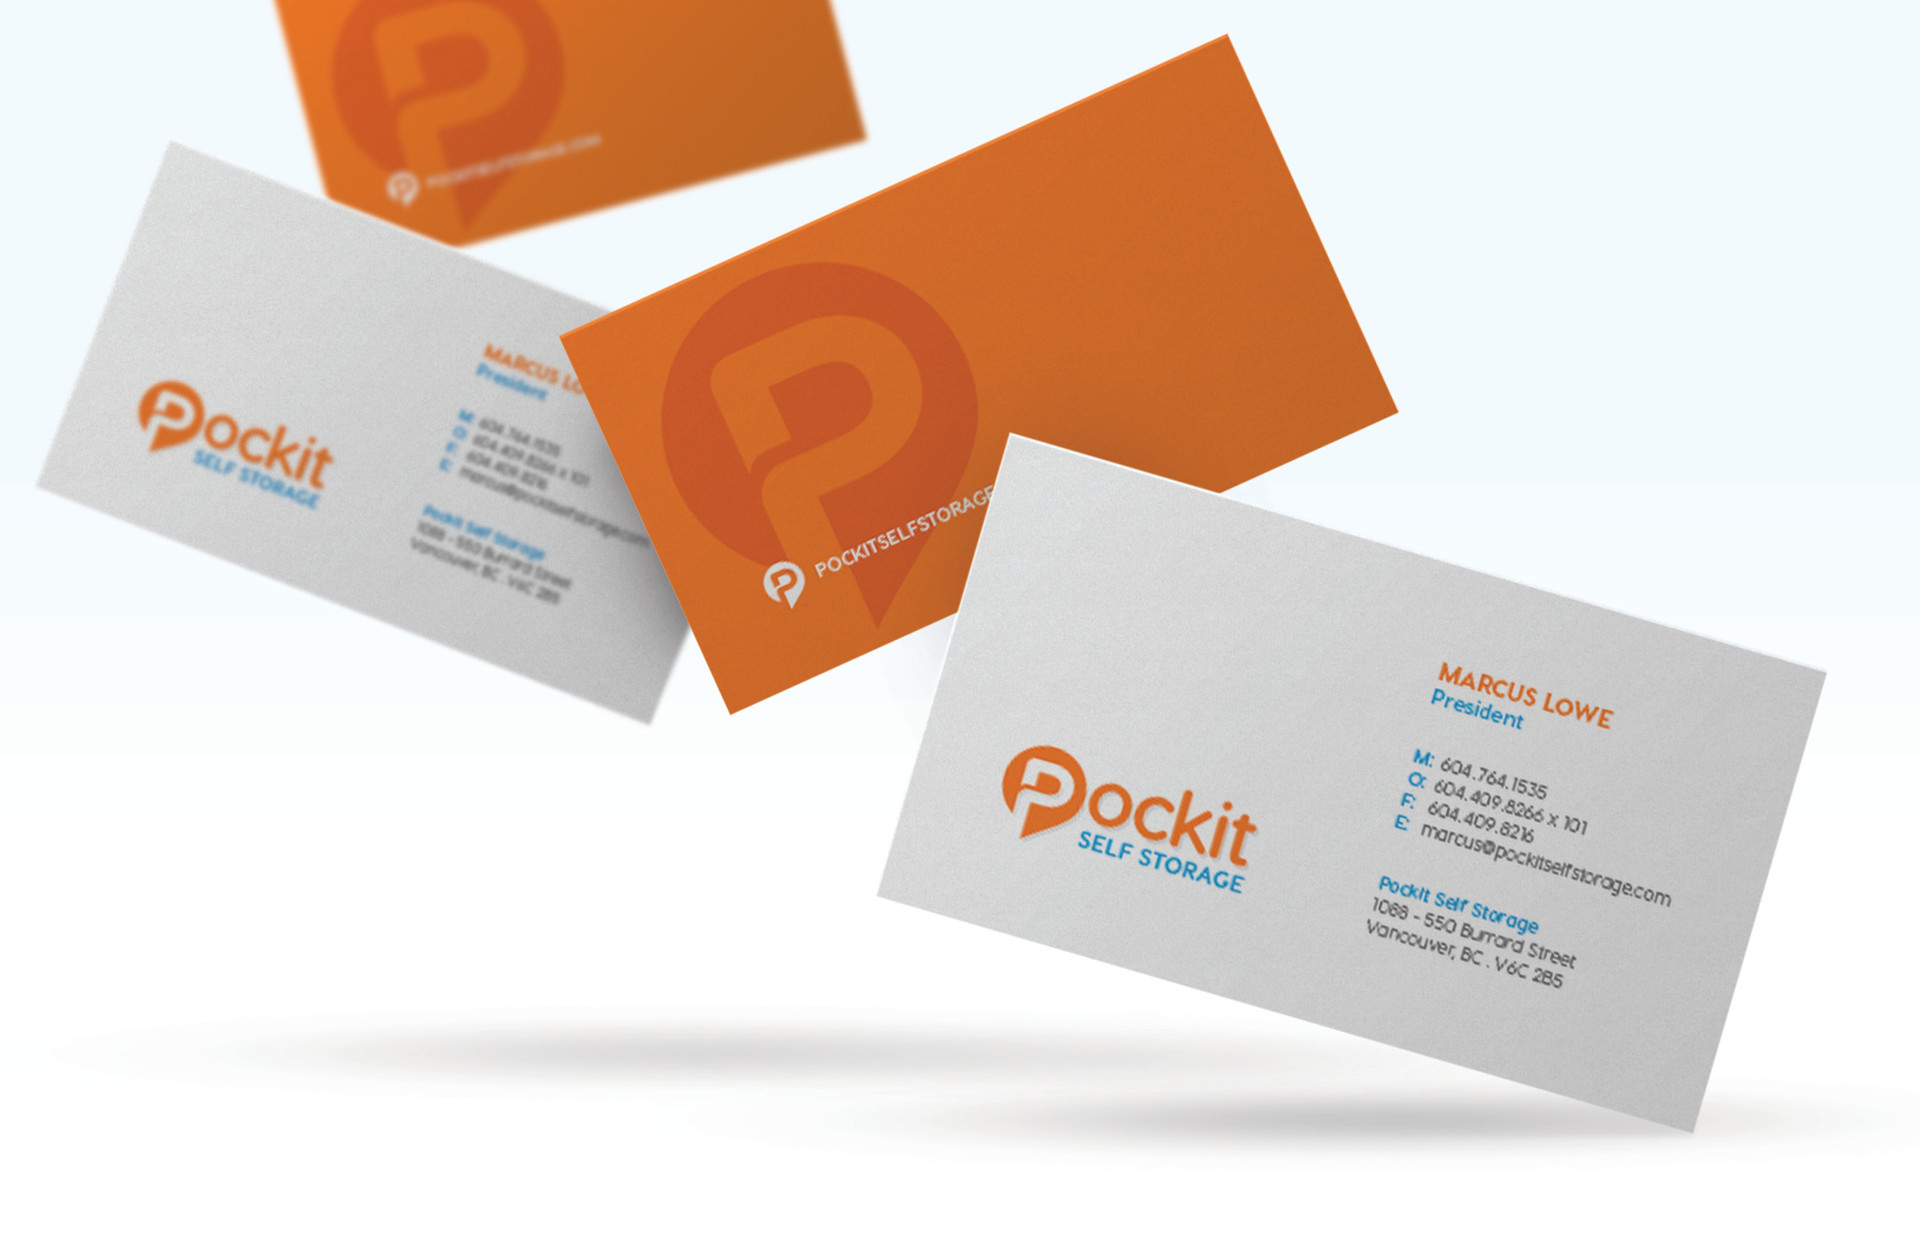 Pockit Business Cards.jpg